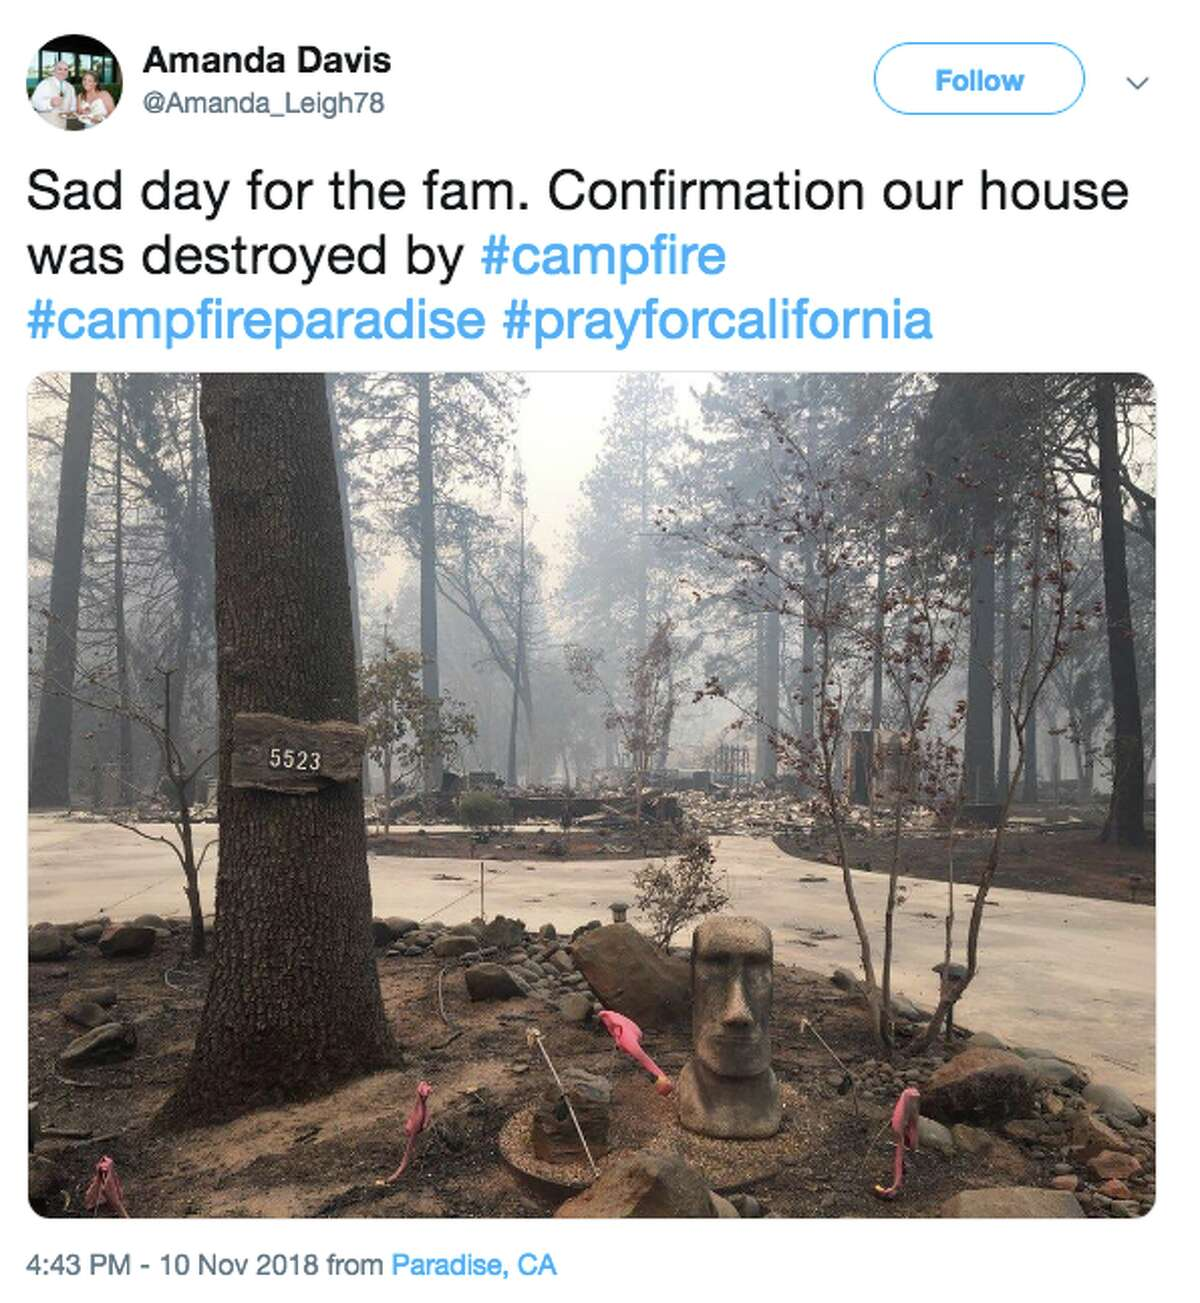 @Amanda_Leigh78 tweeted a photo of her destroyed home on Saturday, Nov. 10, 2018 after the Camp Fire.